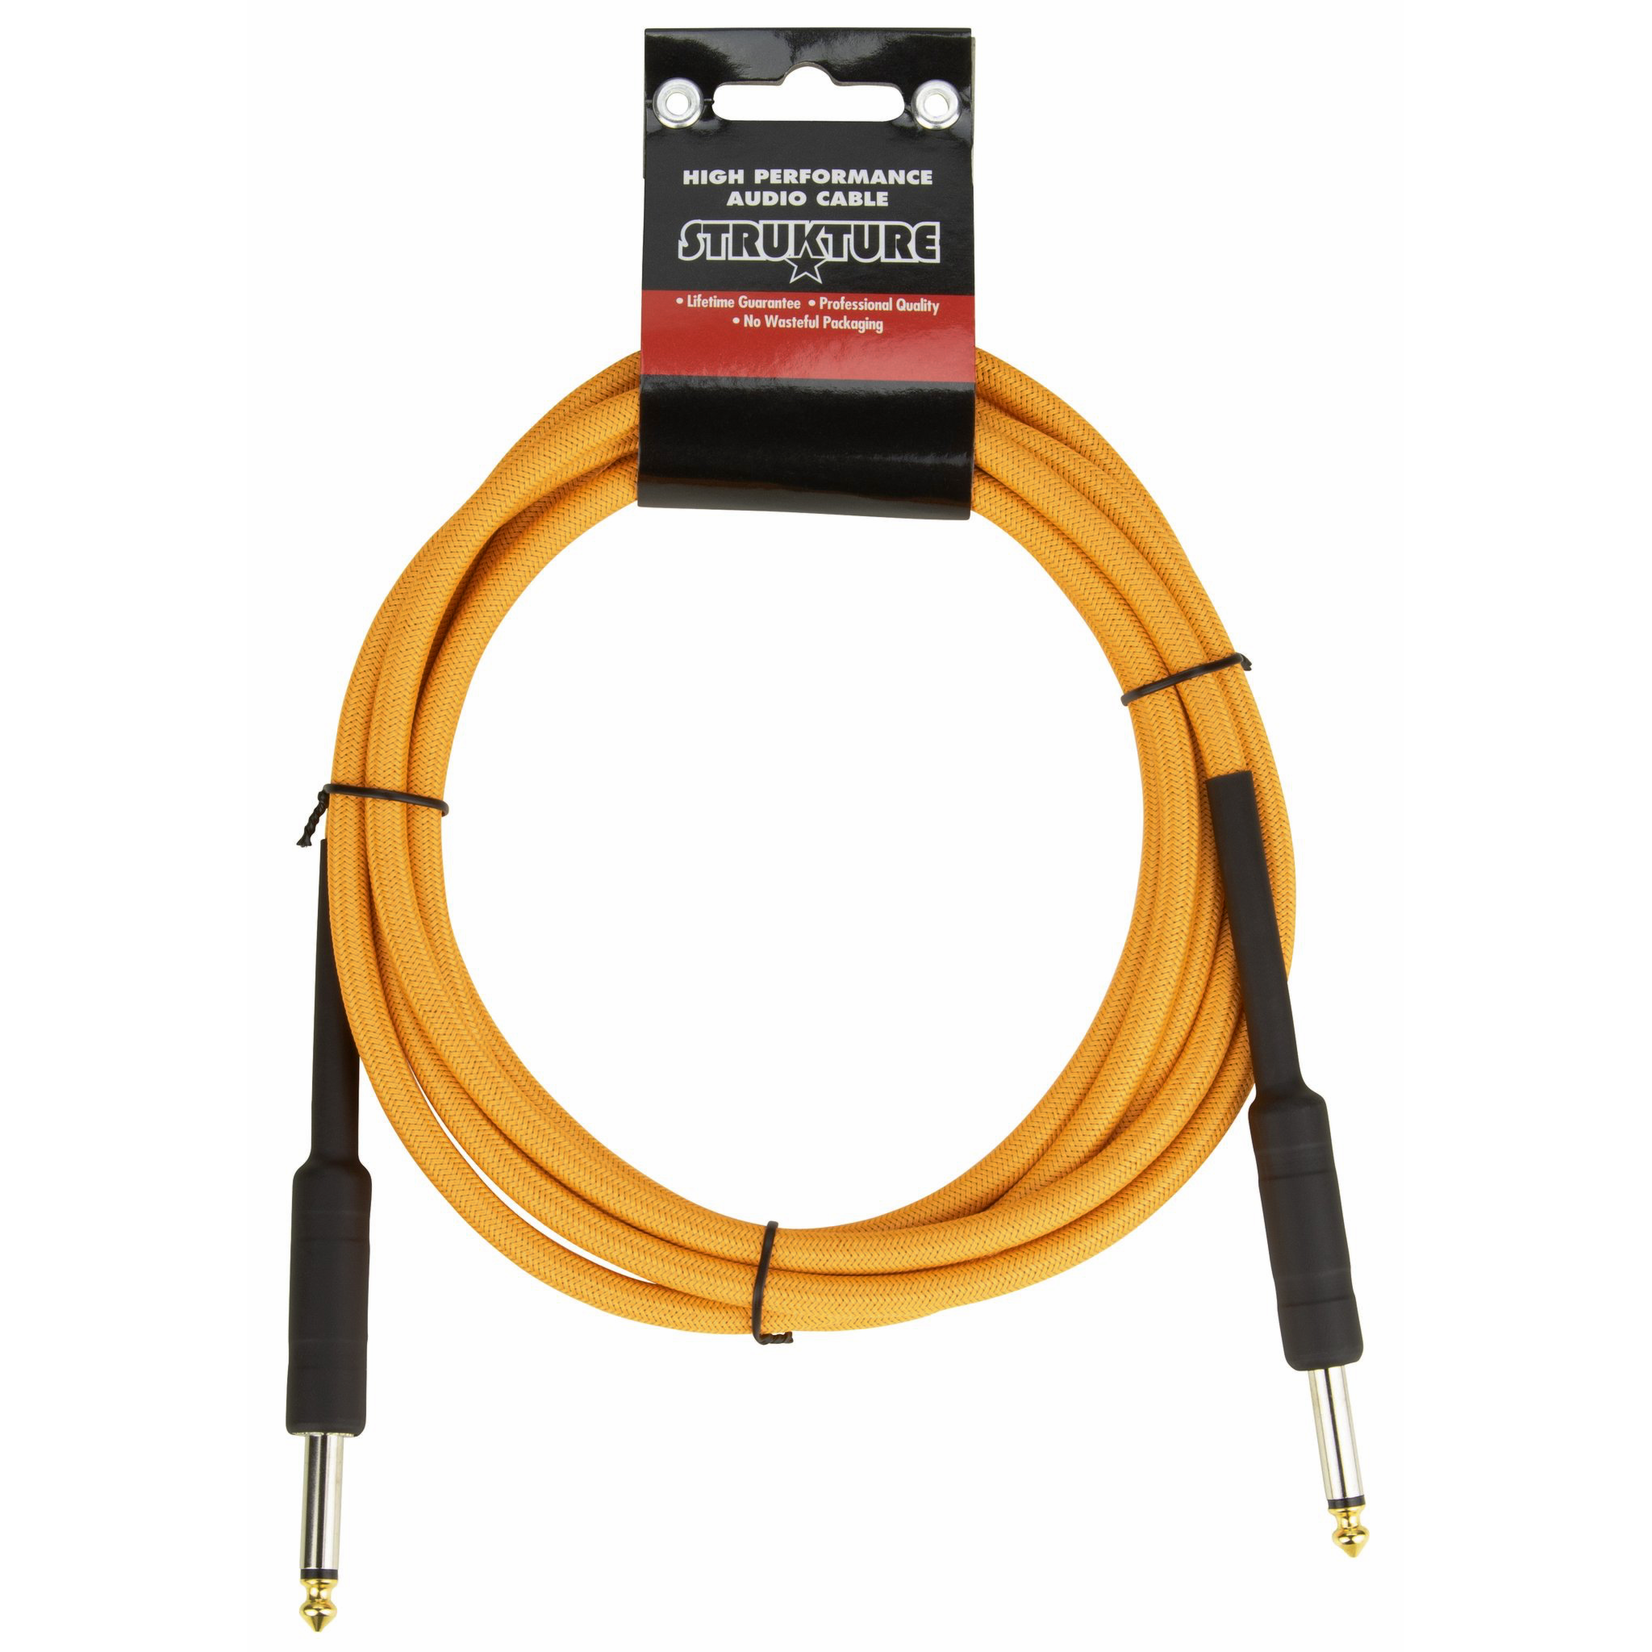 "Strukture Strukture 18.6 ft Instrument Cable, 6mm Woven, 1/4"" TS Straight Plugs, Electric Sunset Neon Orange"